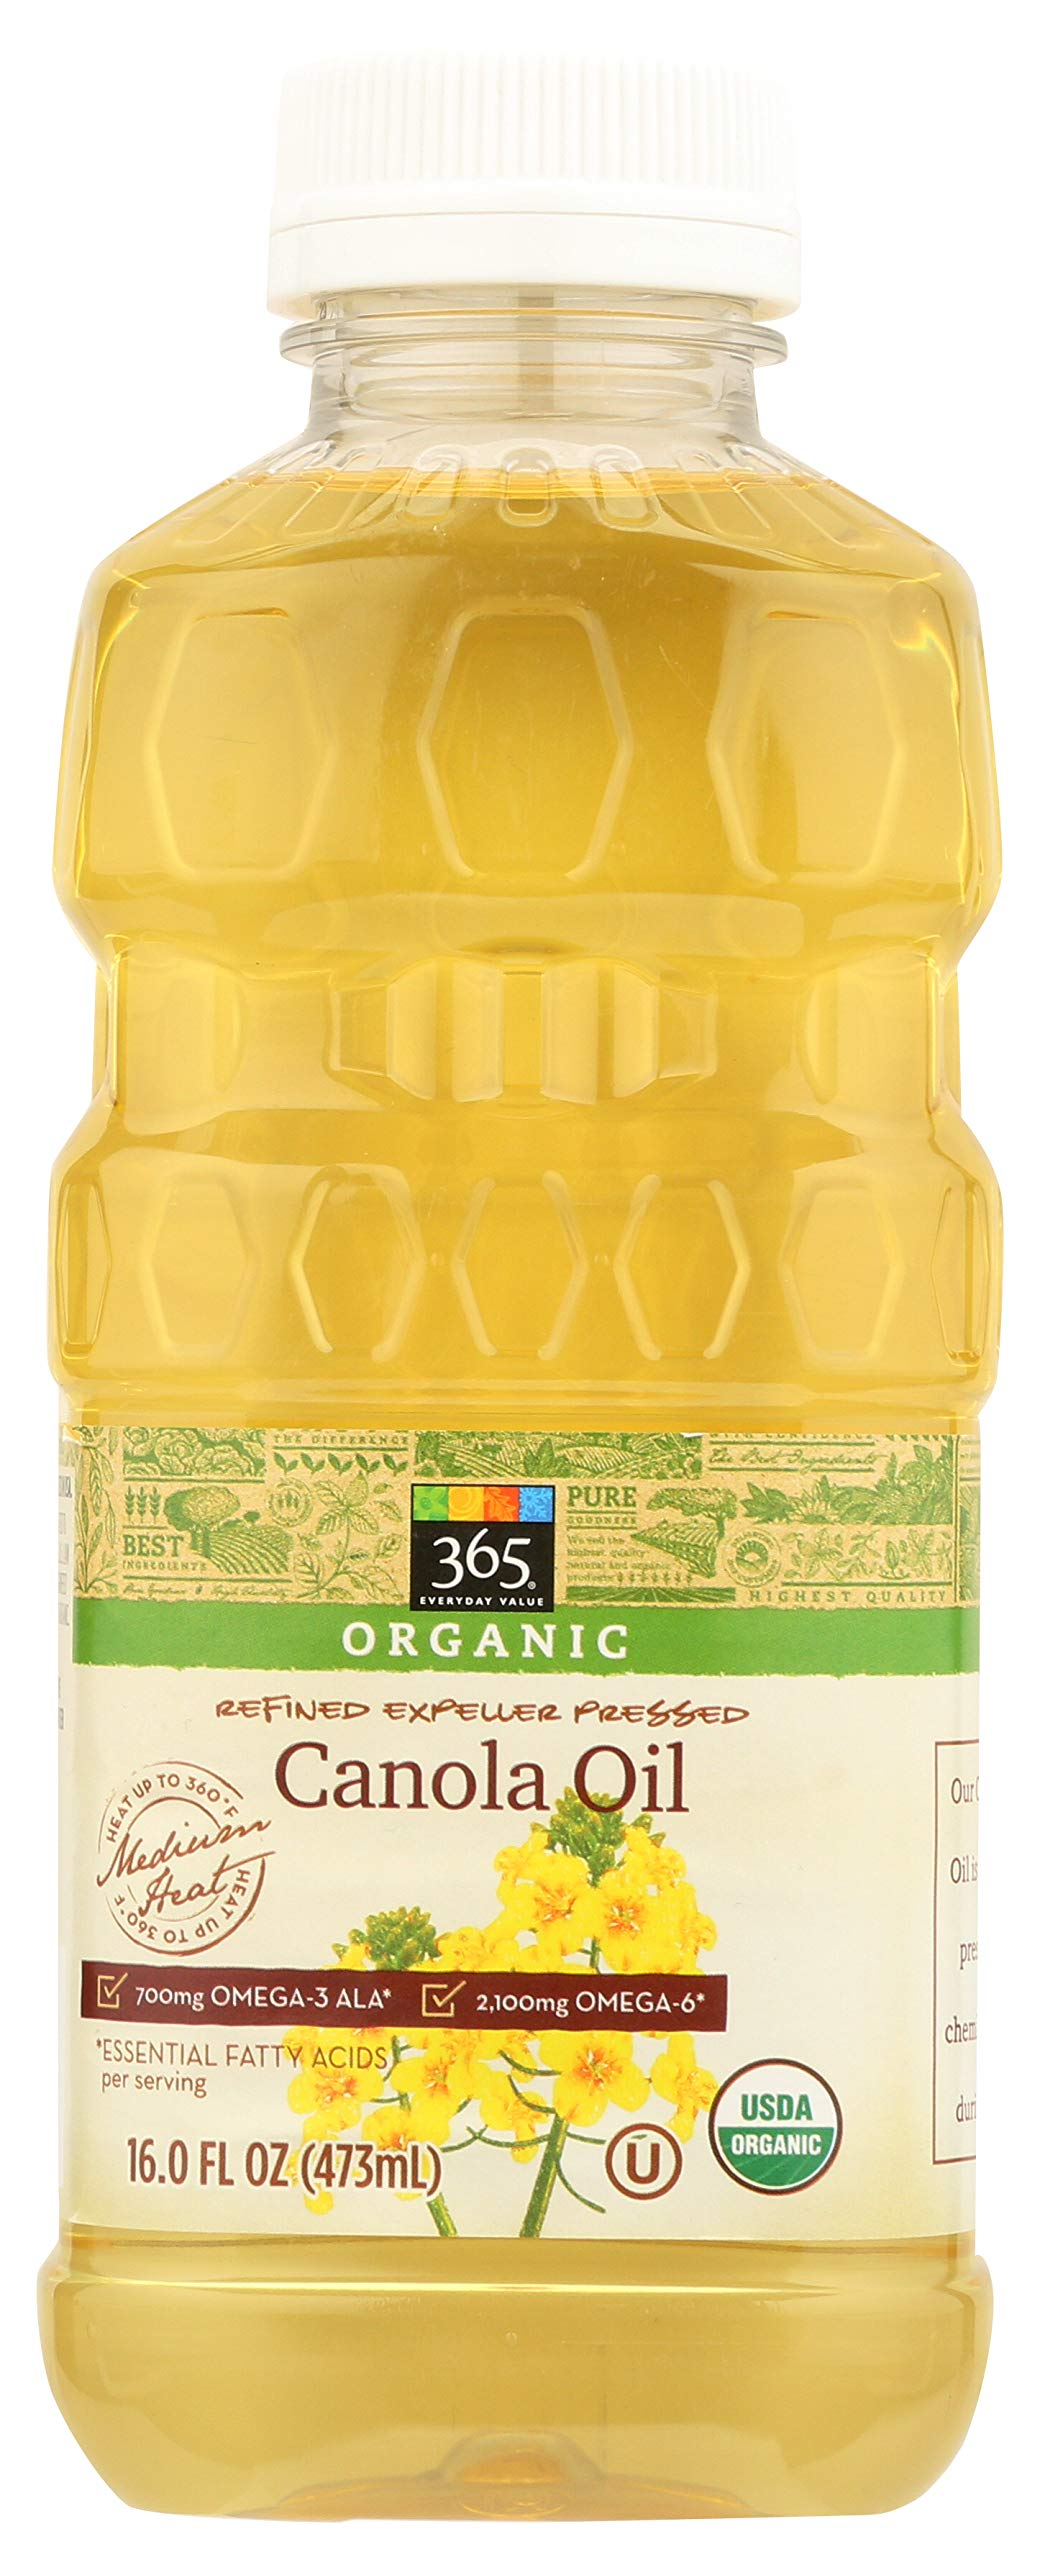 365 Everyday Value, Organic Canola Oil, 16 fl oz